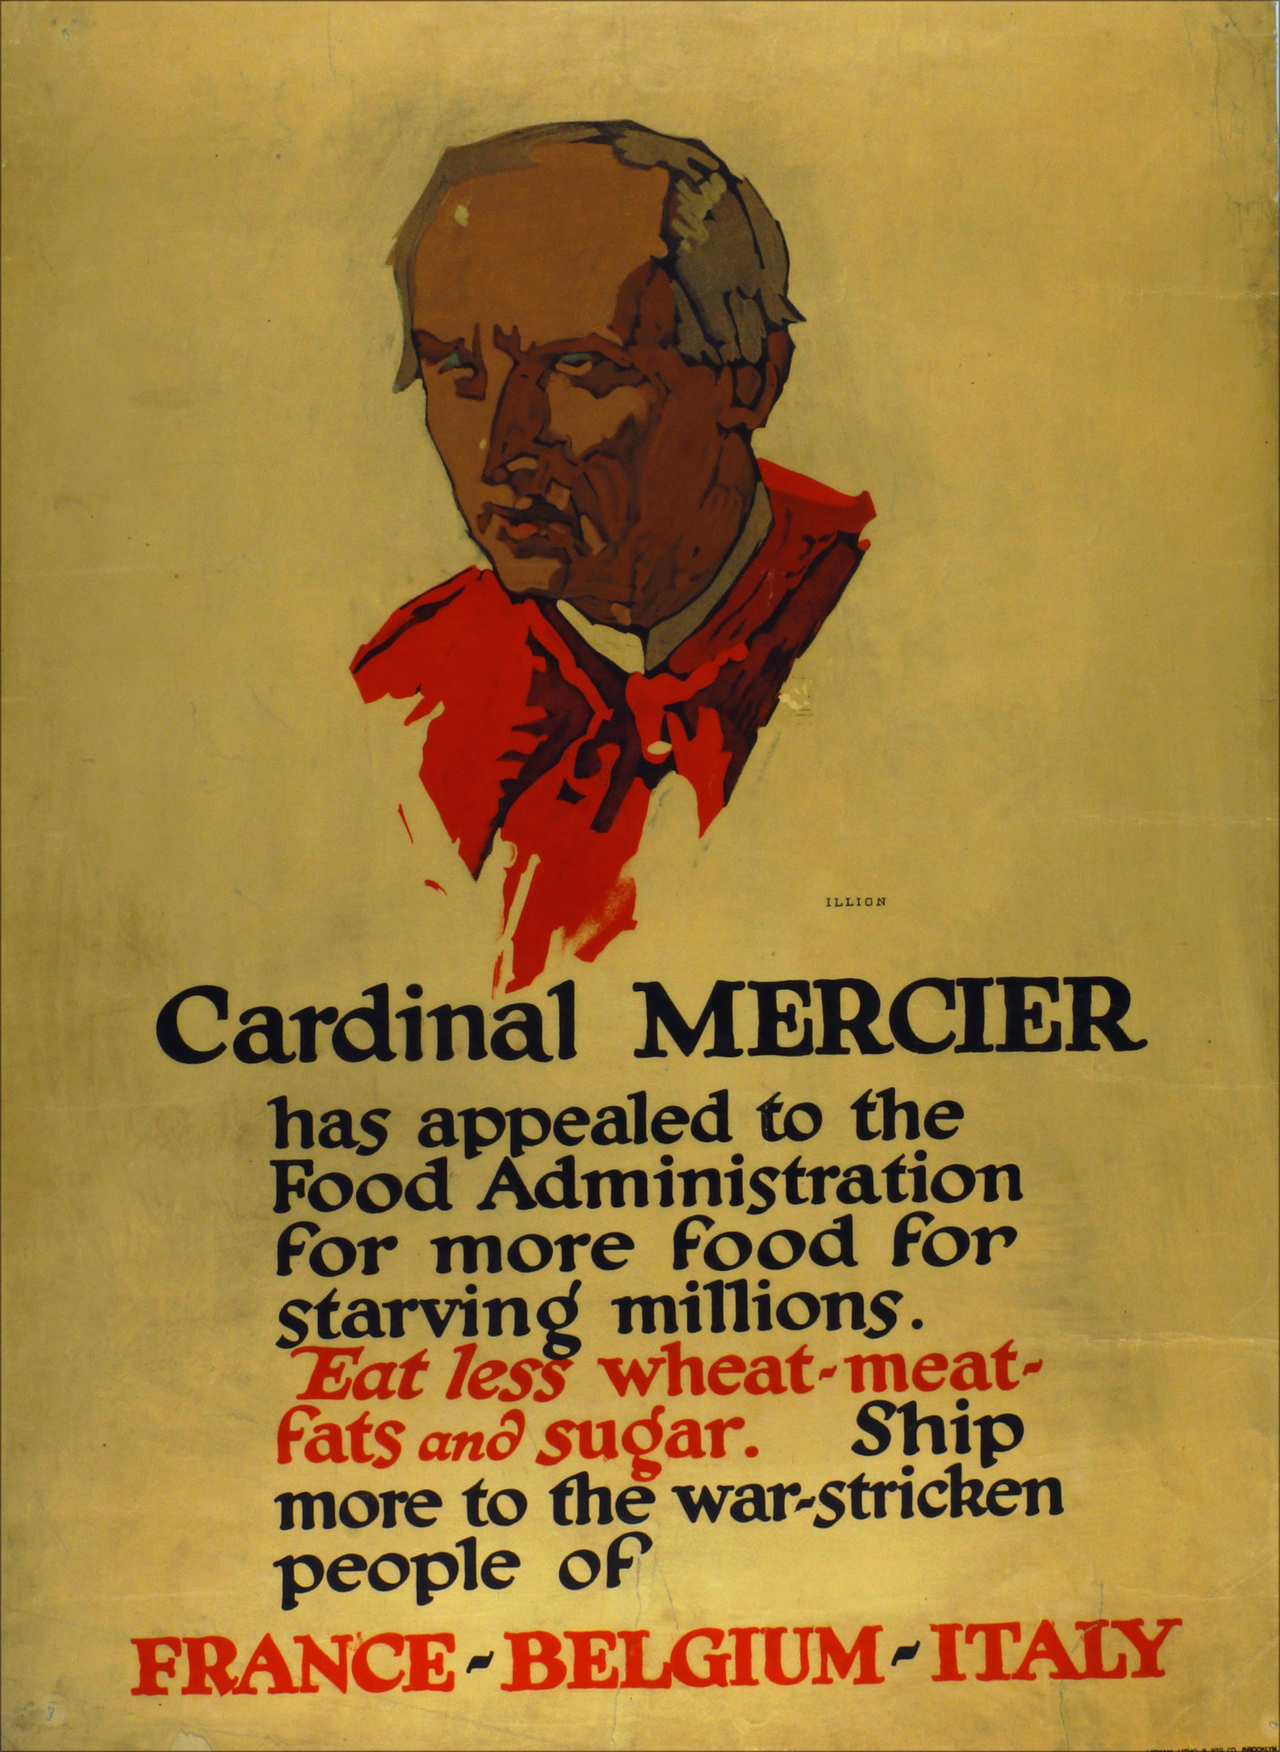 Cardinal Mercier has appealed to the Food Adminstration for more food for starving millions...